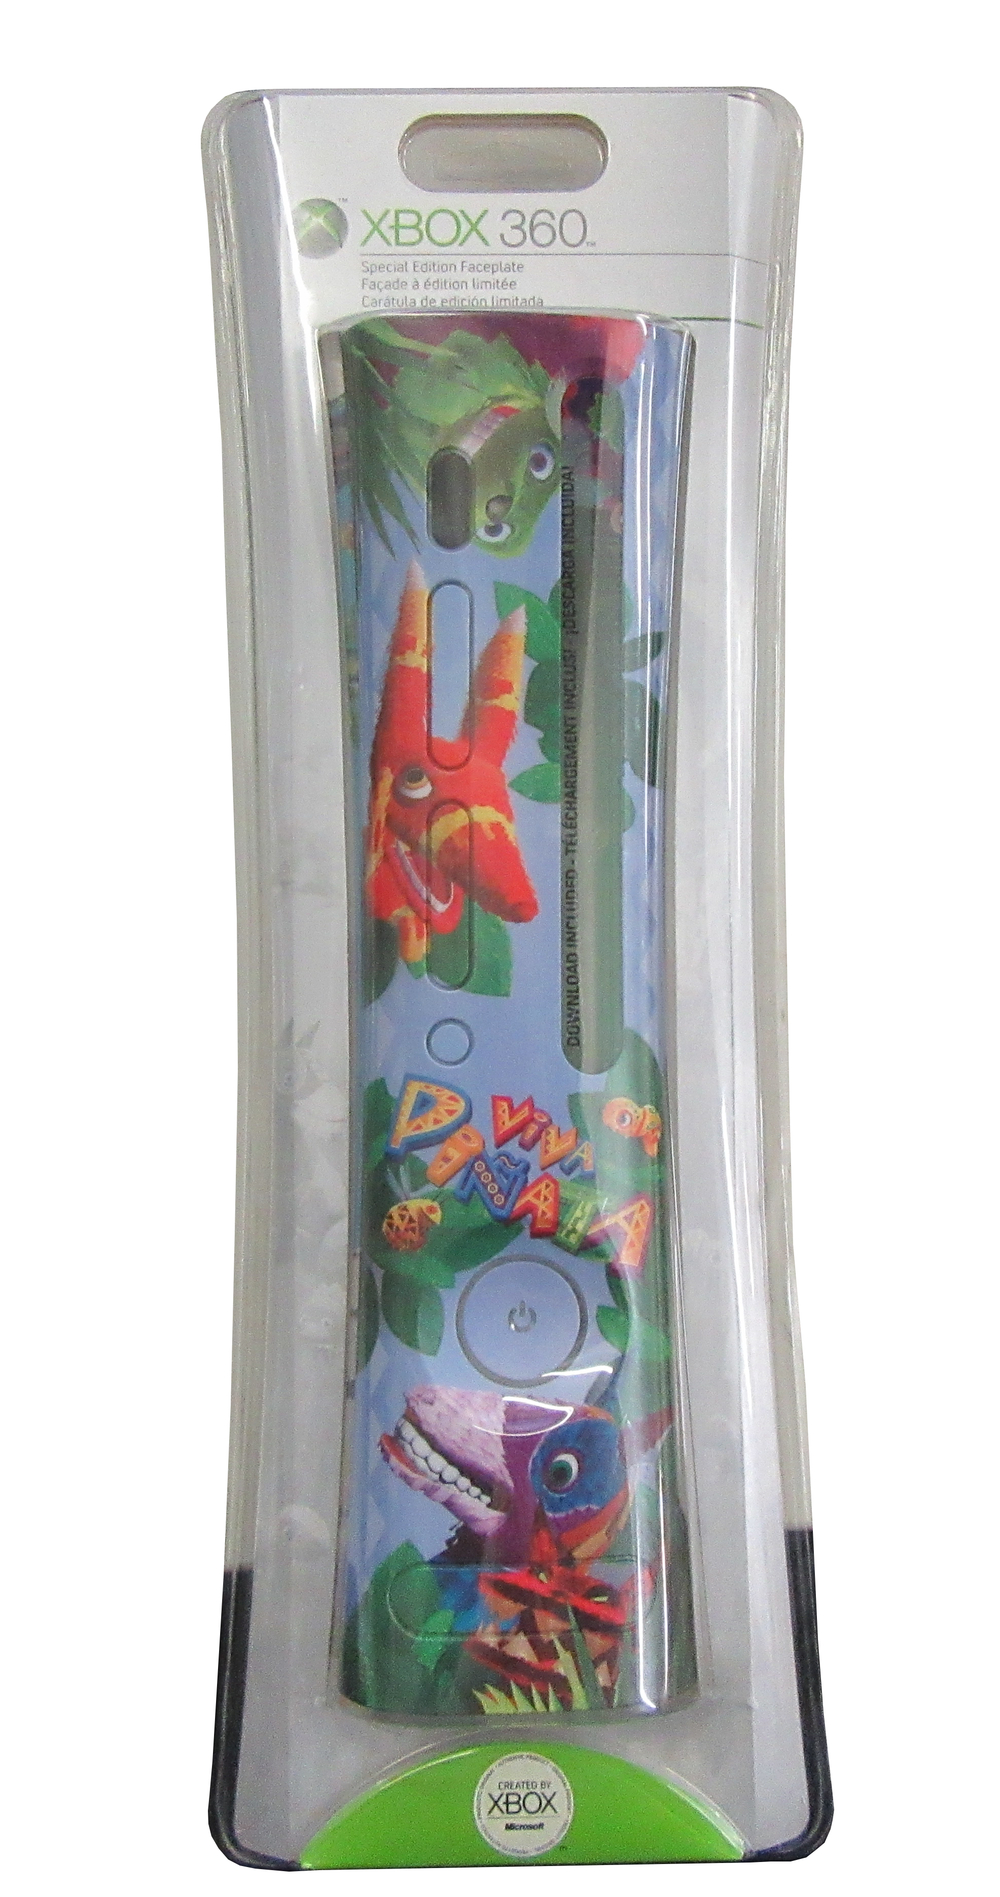 Scan of Document: XBOX 360 Viva Pinata Special Edition Faceplate